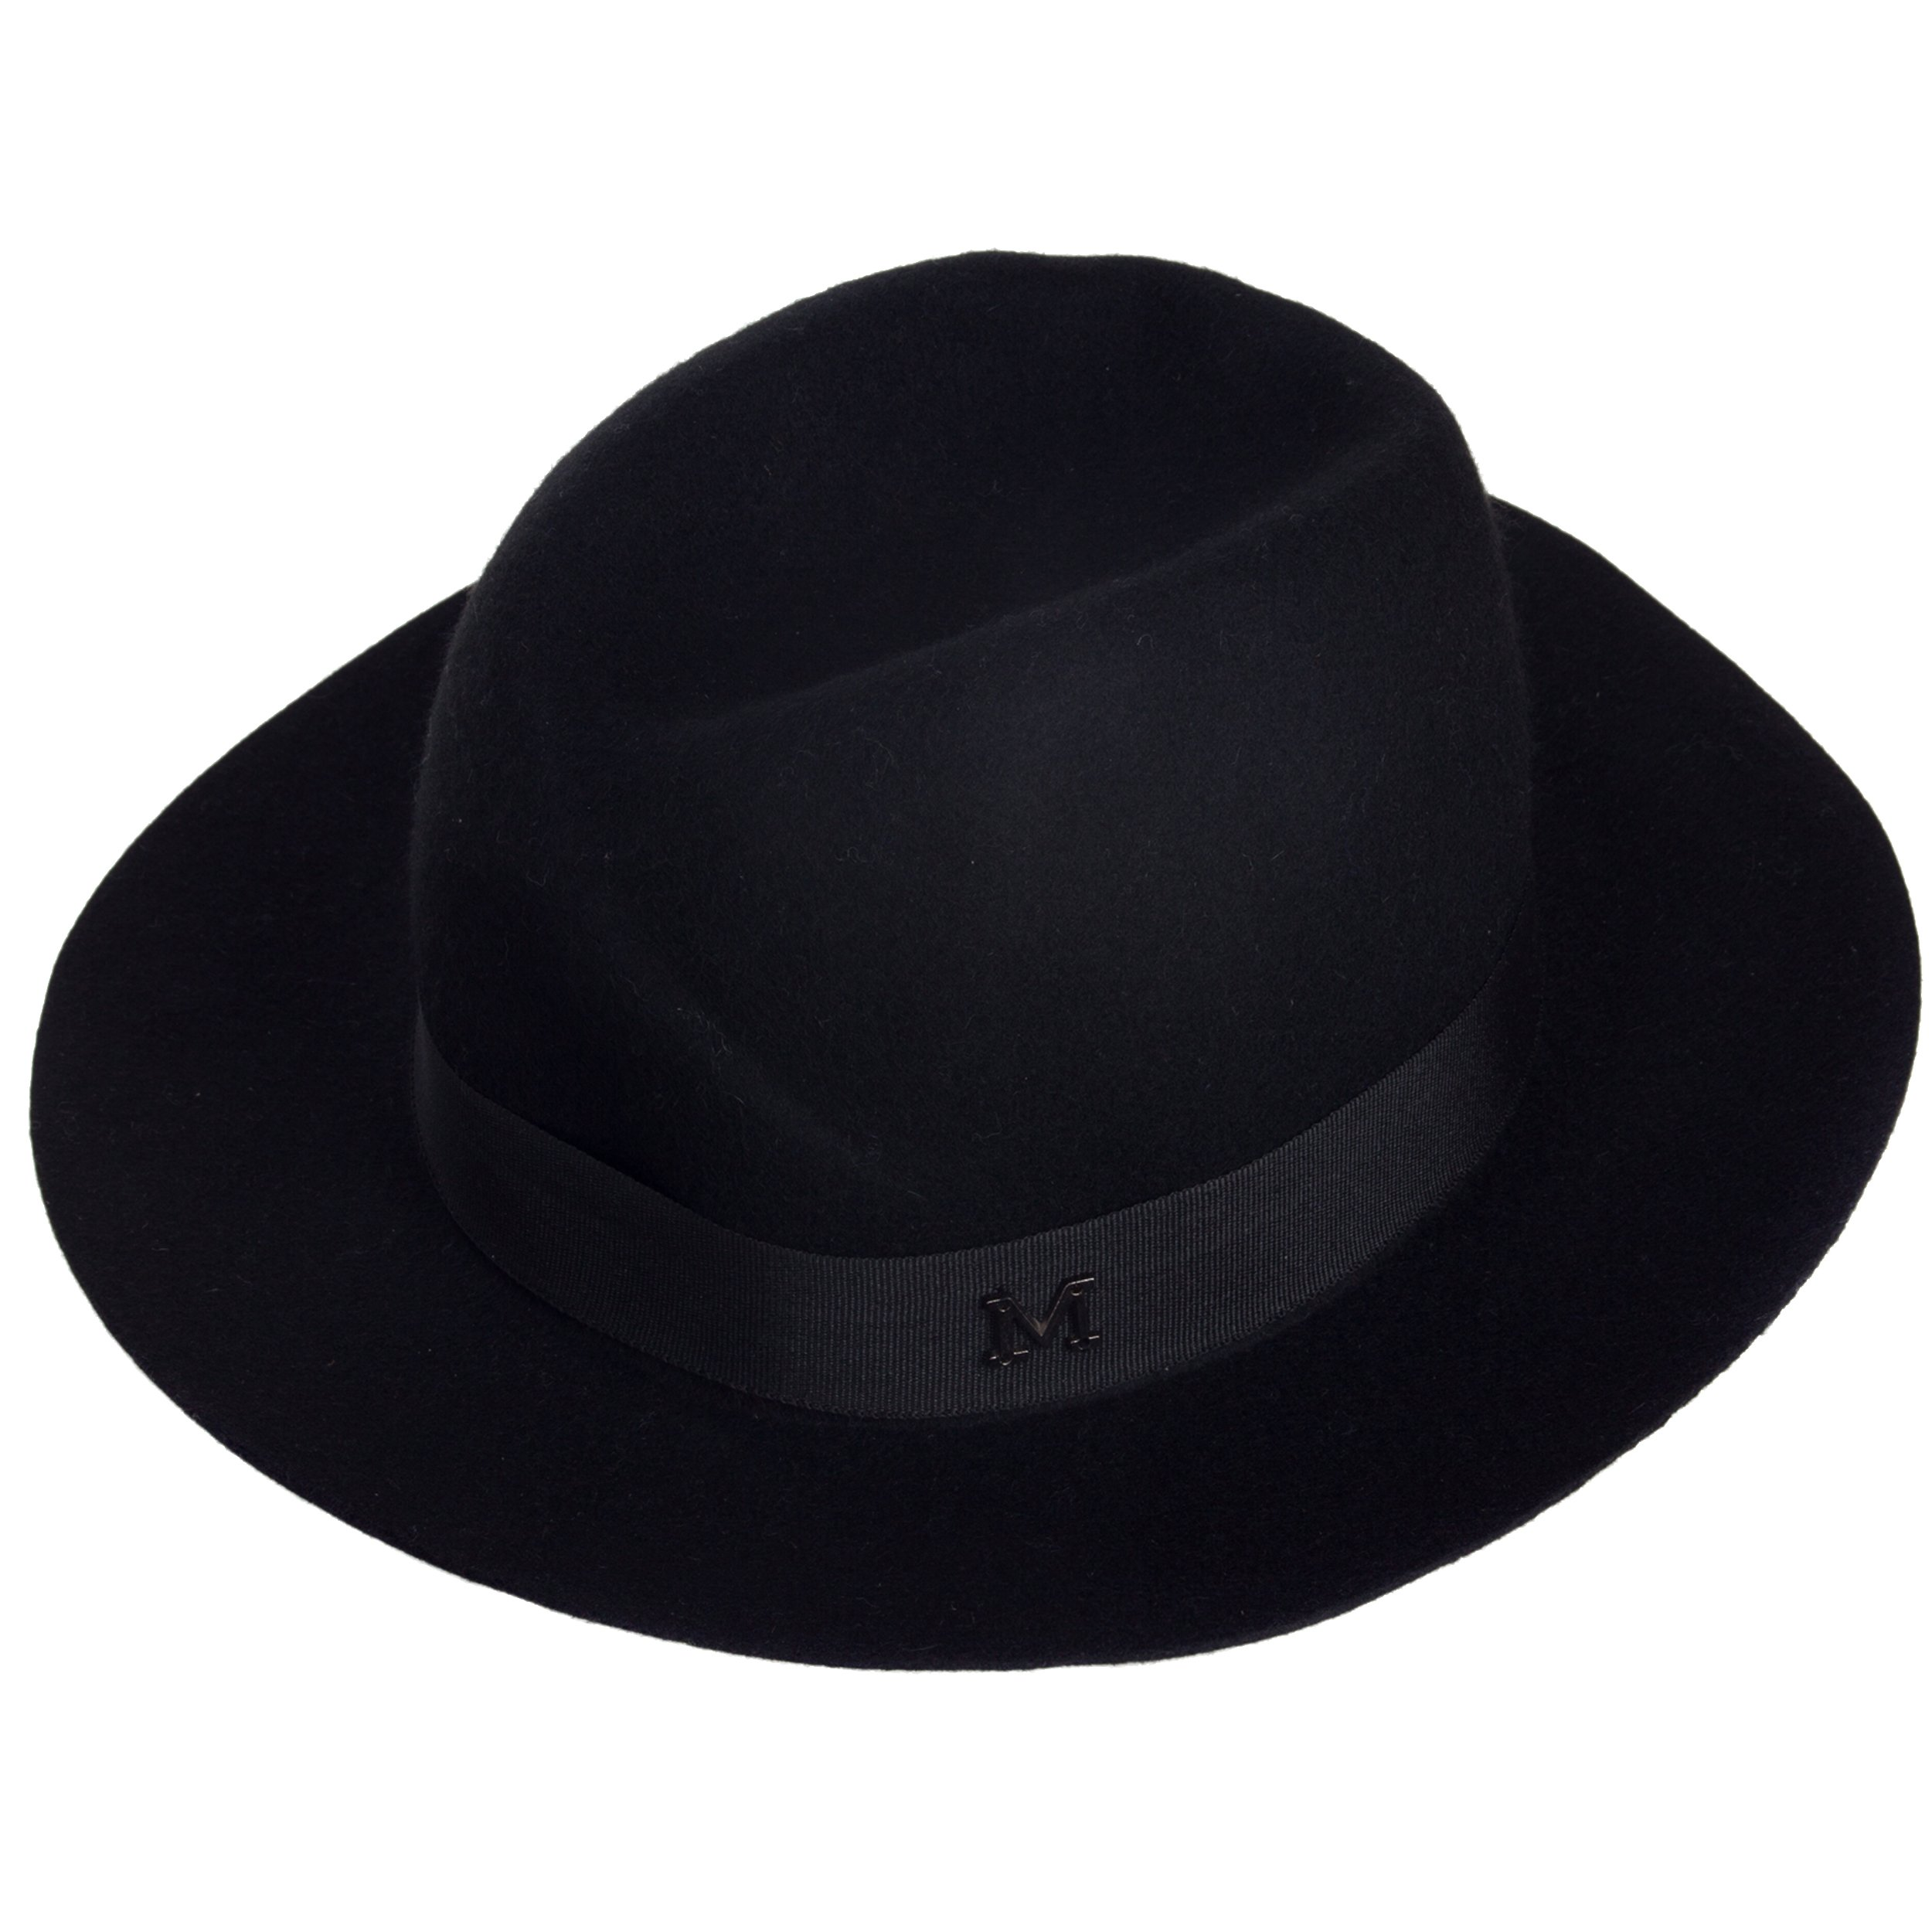 Aerusi Echo Women's Onyx Black Wool Felt Fedora Hat